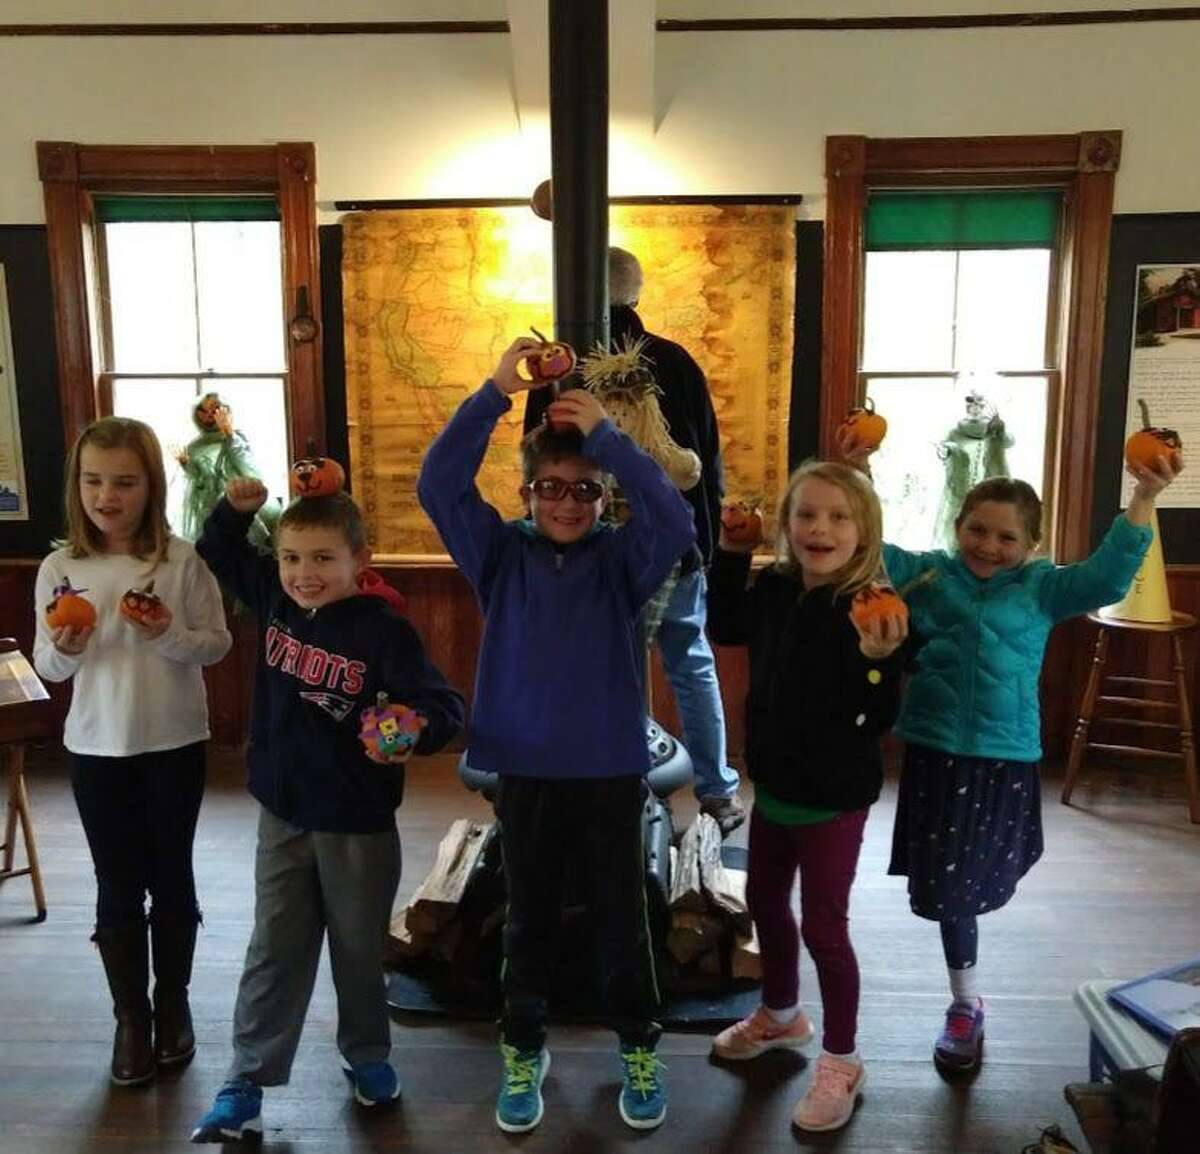 The Peter Parley Schoolhouse will celebrate the end of its season of open houses with a Halloween party for families on Sunday, Oct. 27.